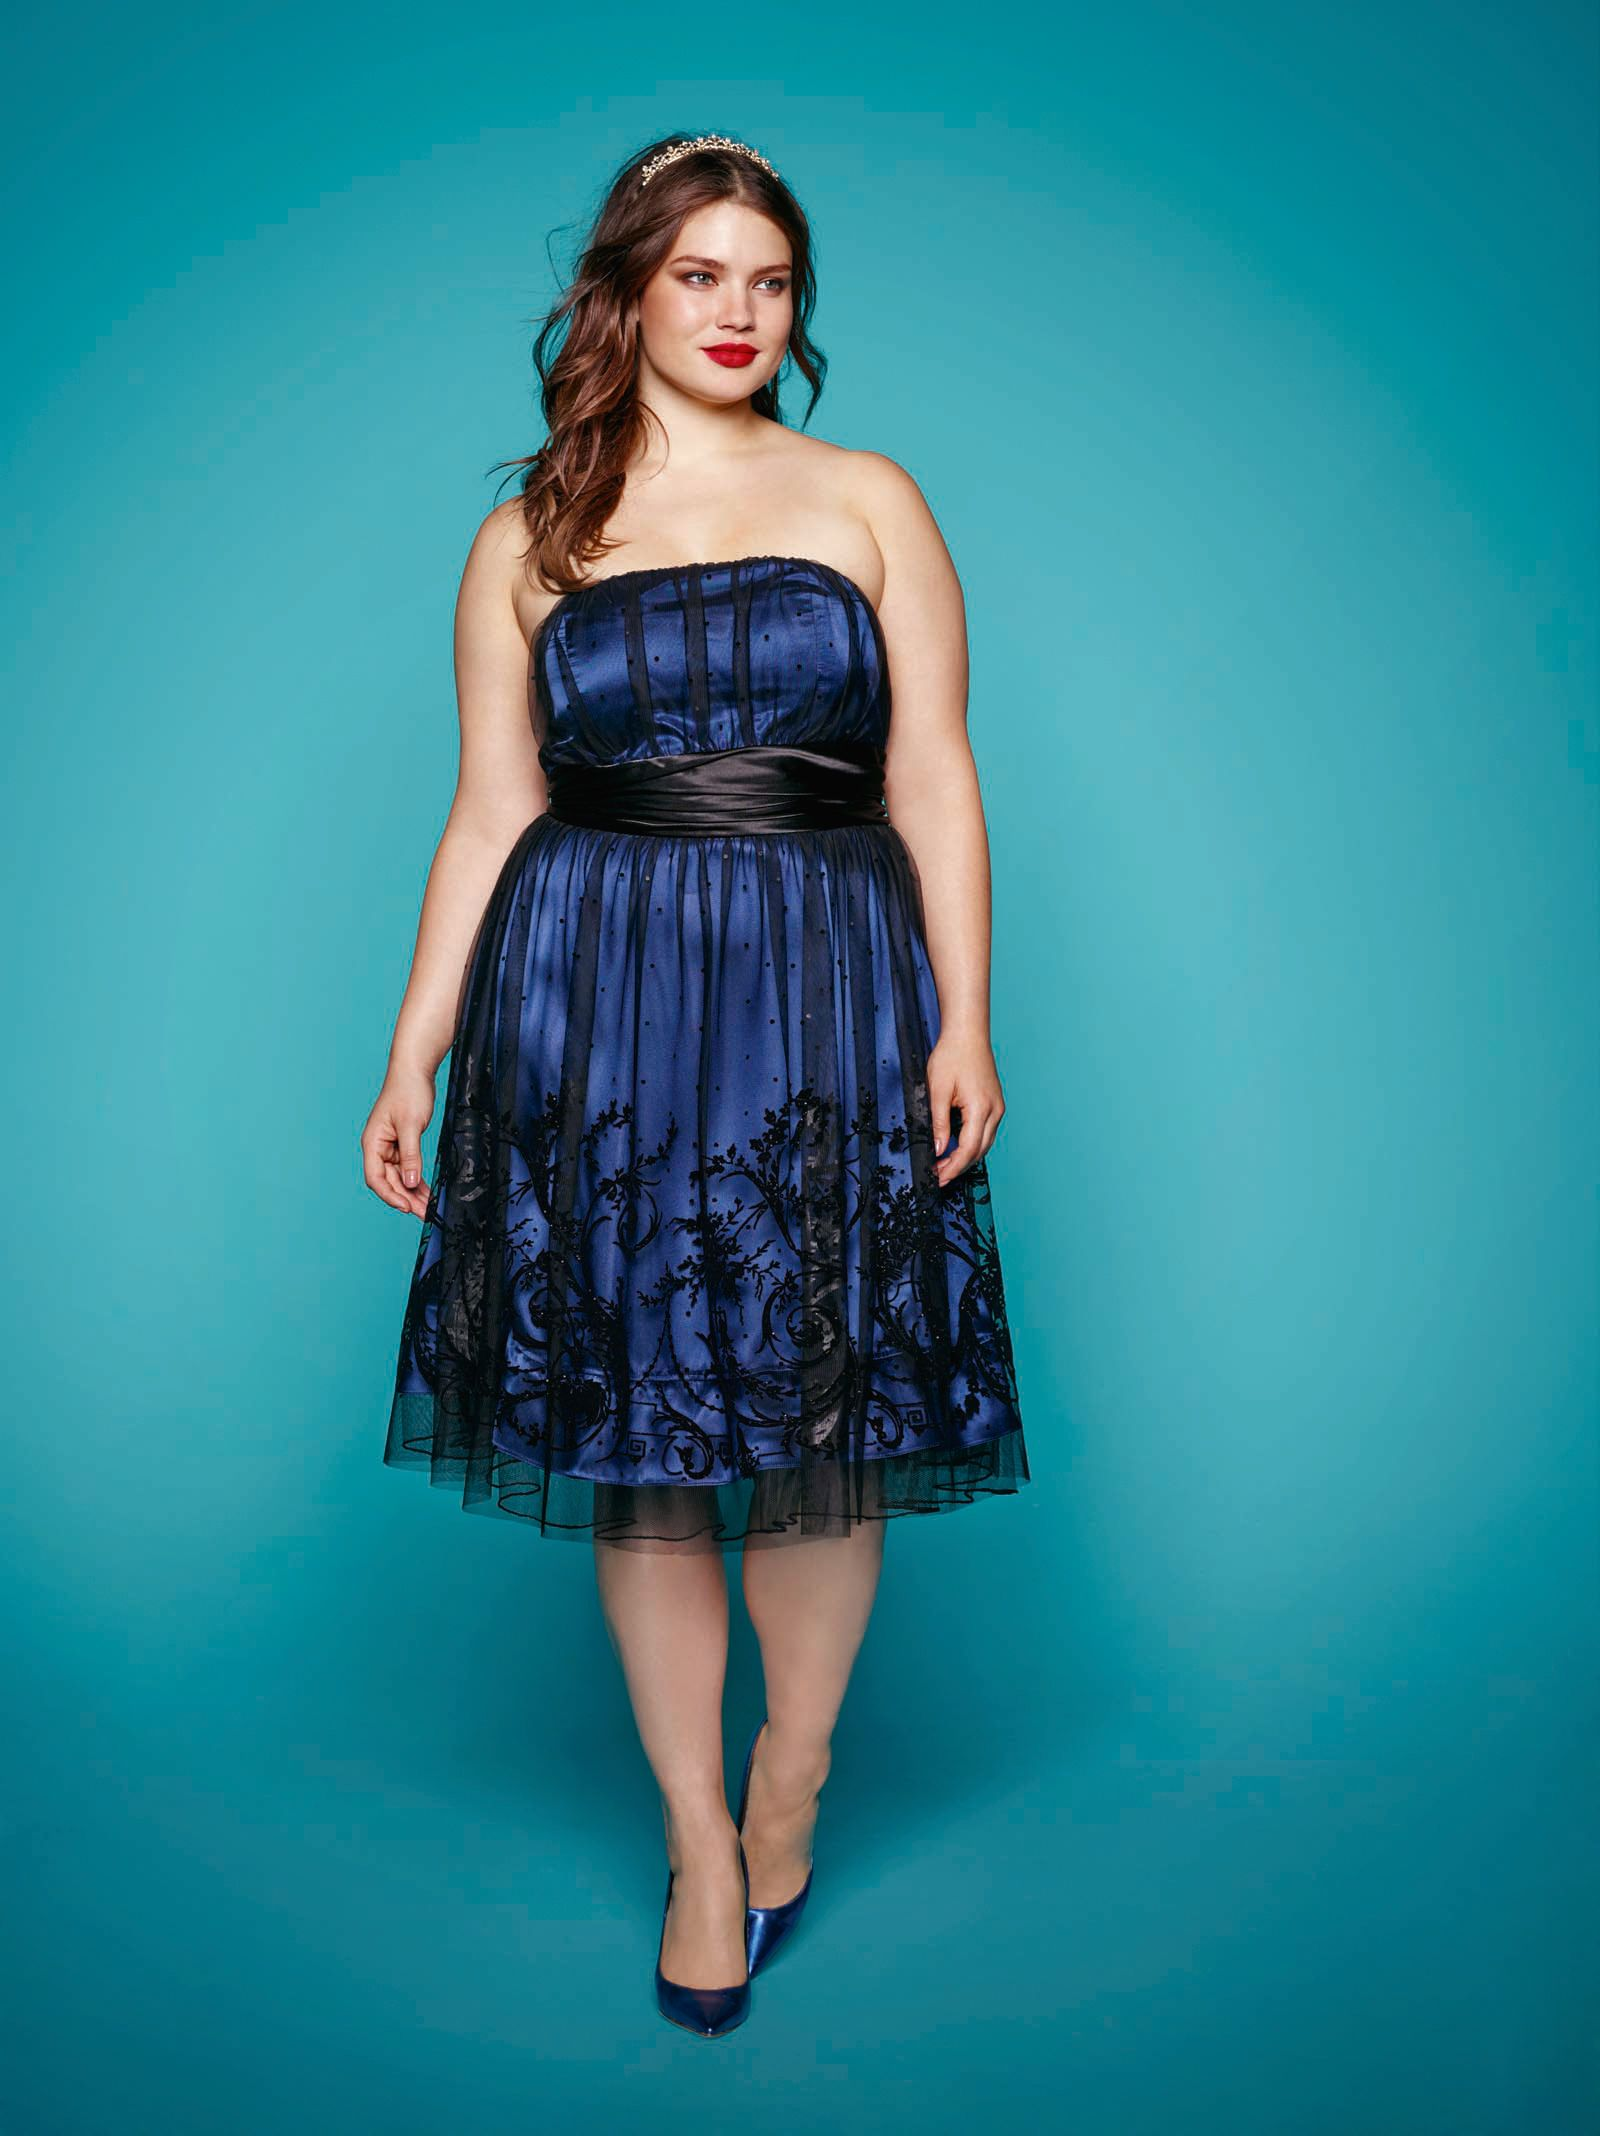 83c8ff6b35e7c Plus size model Tara Lynn wearing the beautiful midnight blue crinoline  dress. Available at Addition Elle.